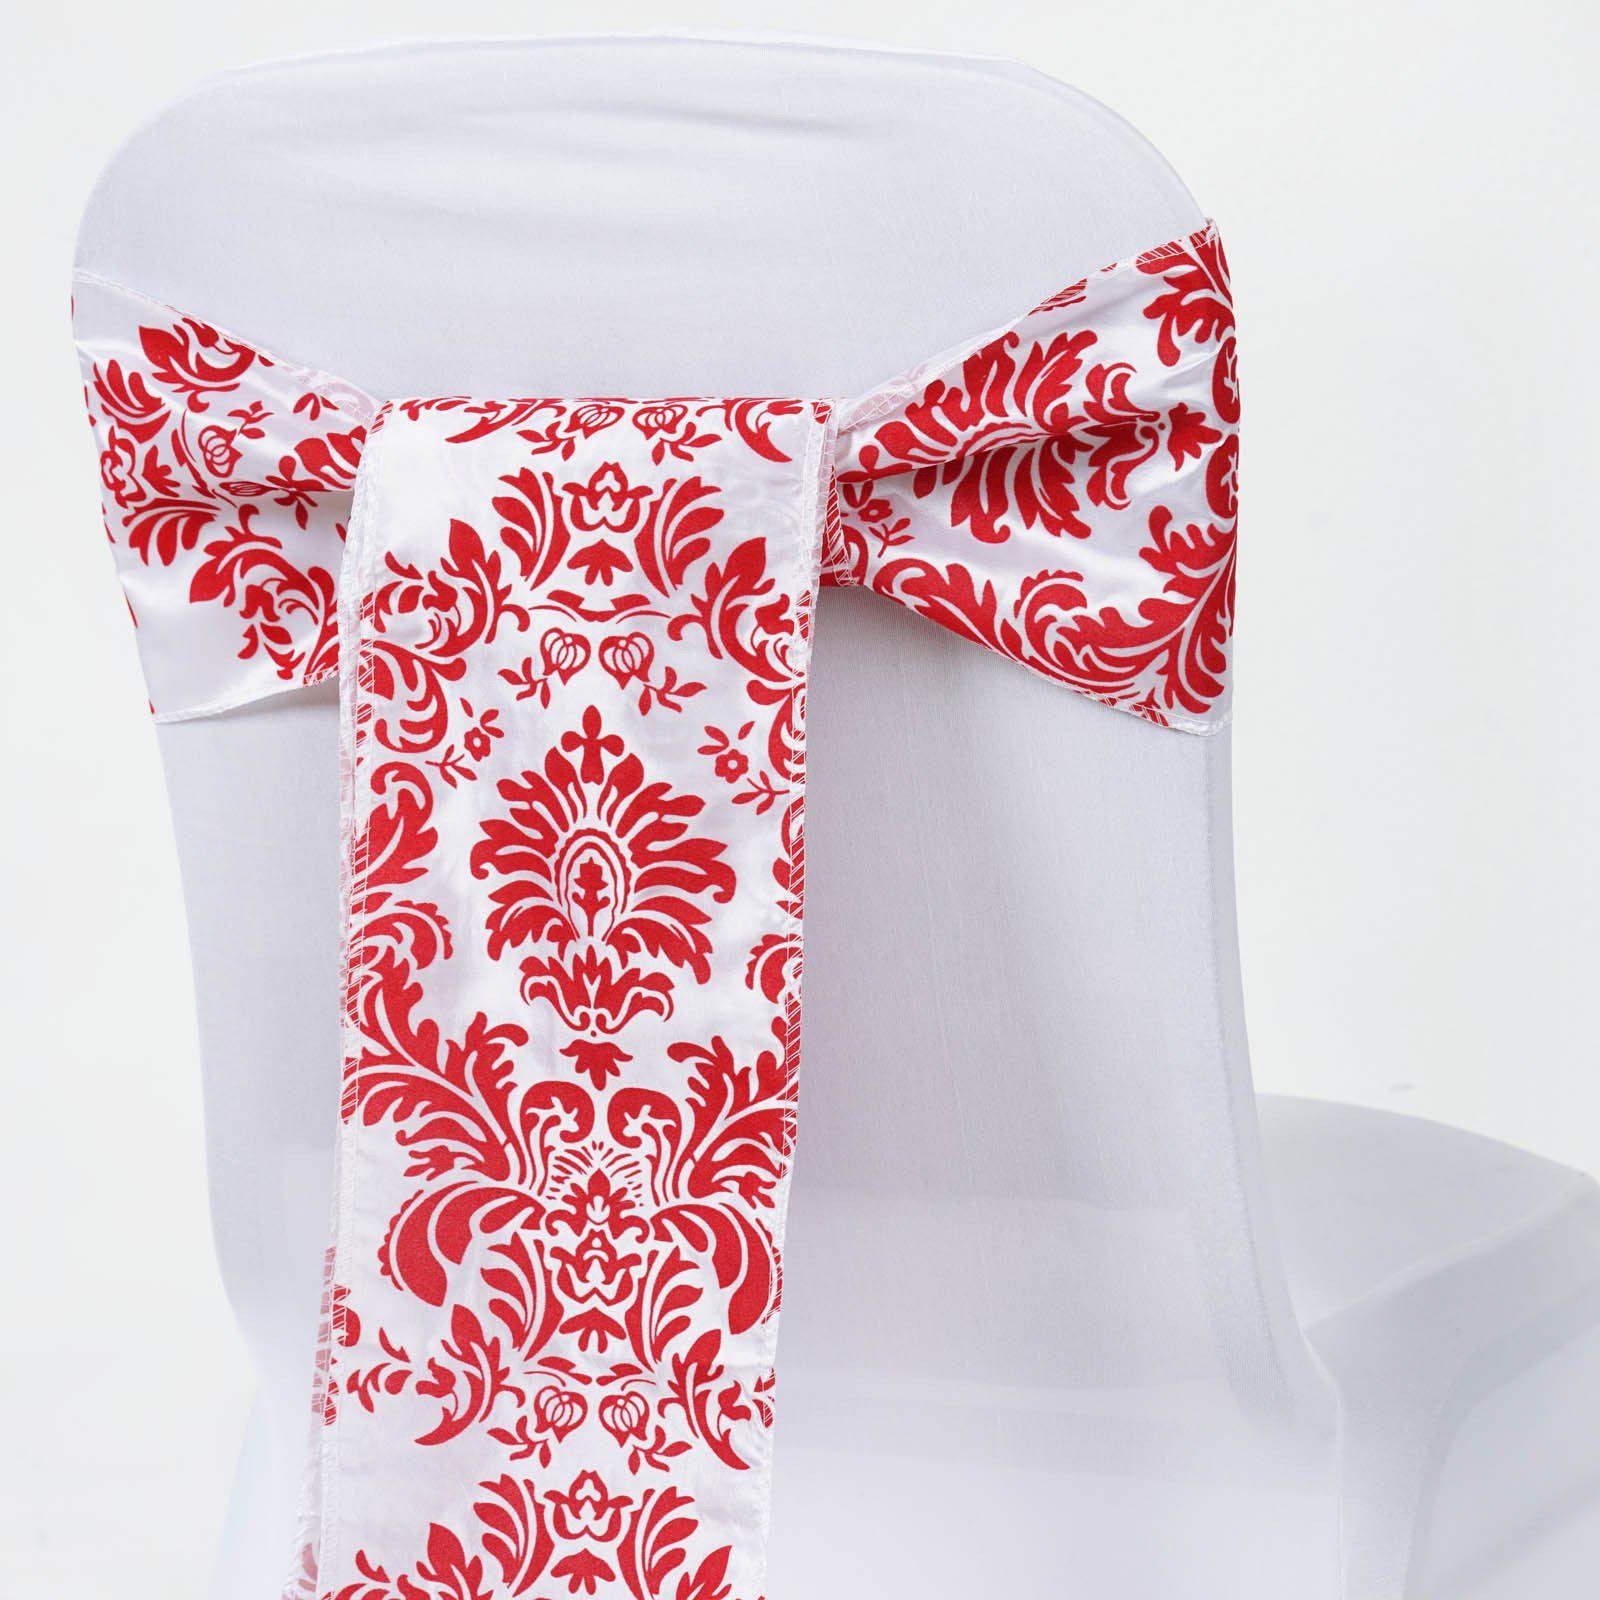 5pcs Red Taffeta Flocking Chair Sashes Tie Bows Catering Wedding ...